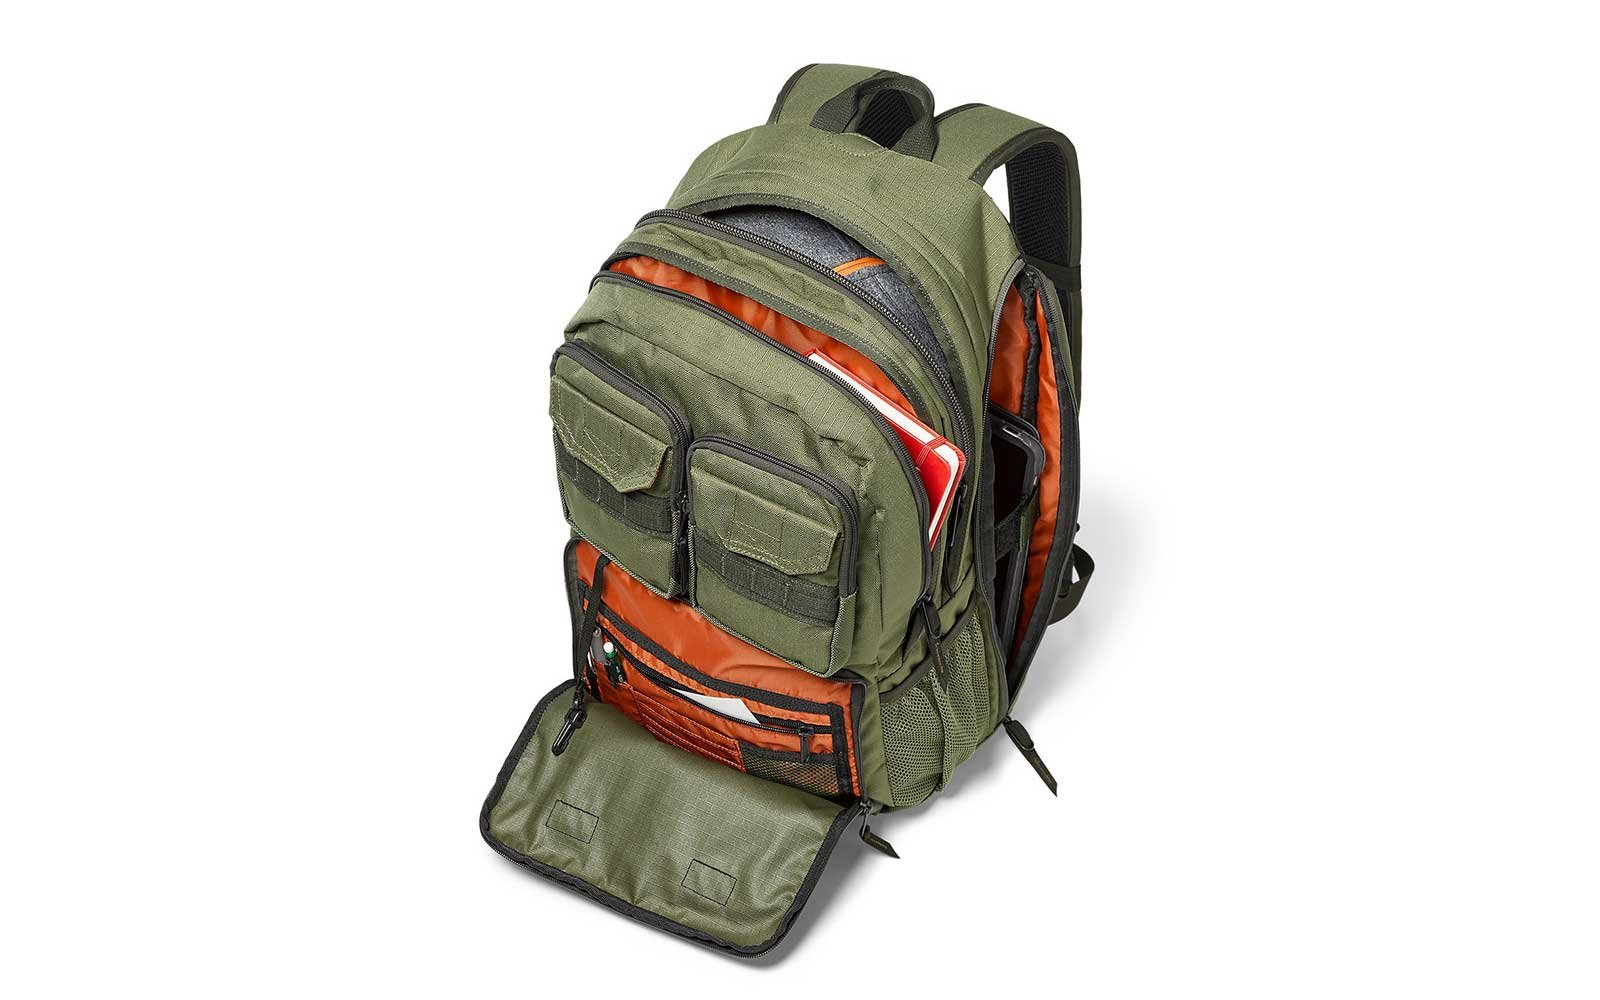 9c6945a931 Eddie Bauer Cargo Pack. Green Eddie Bauer waterproof backpack